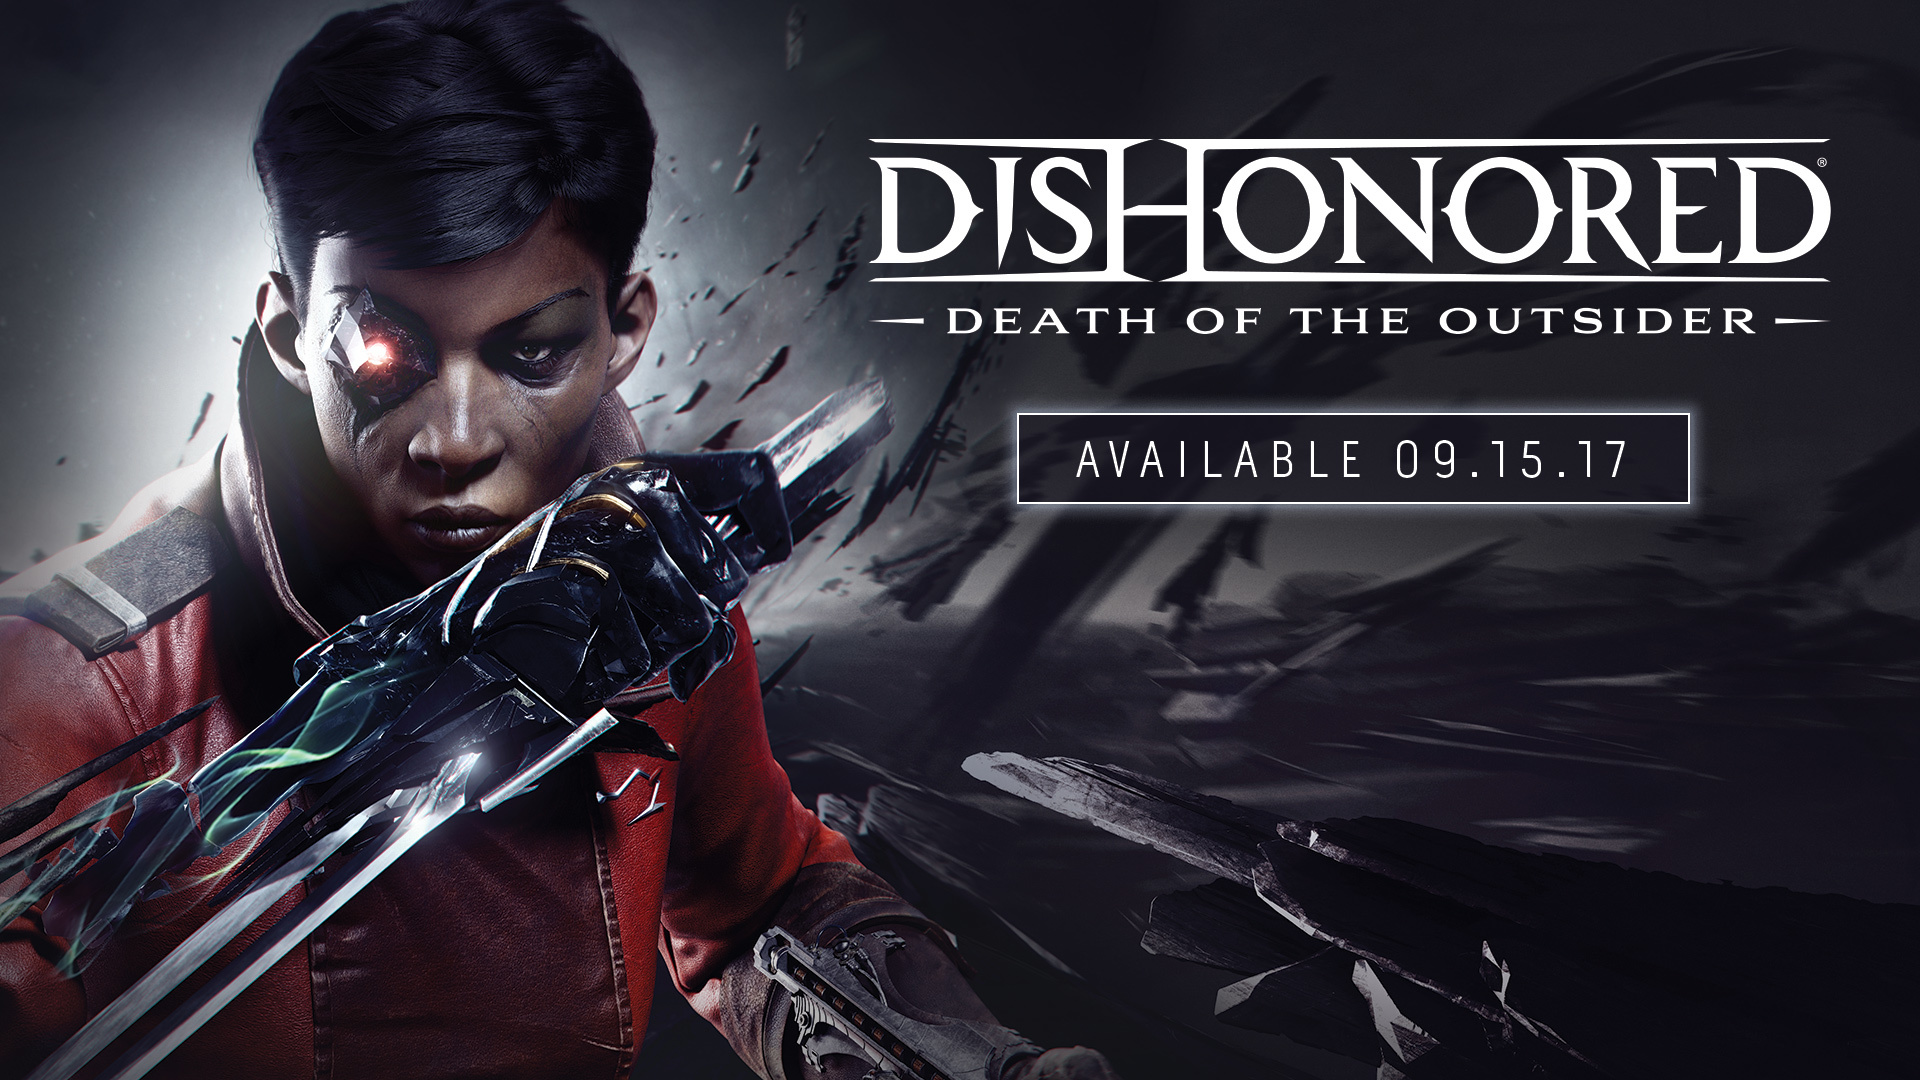 Dishonored: Death of the Outsider tung trailer 'chất' từng chi tiết